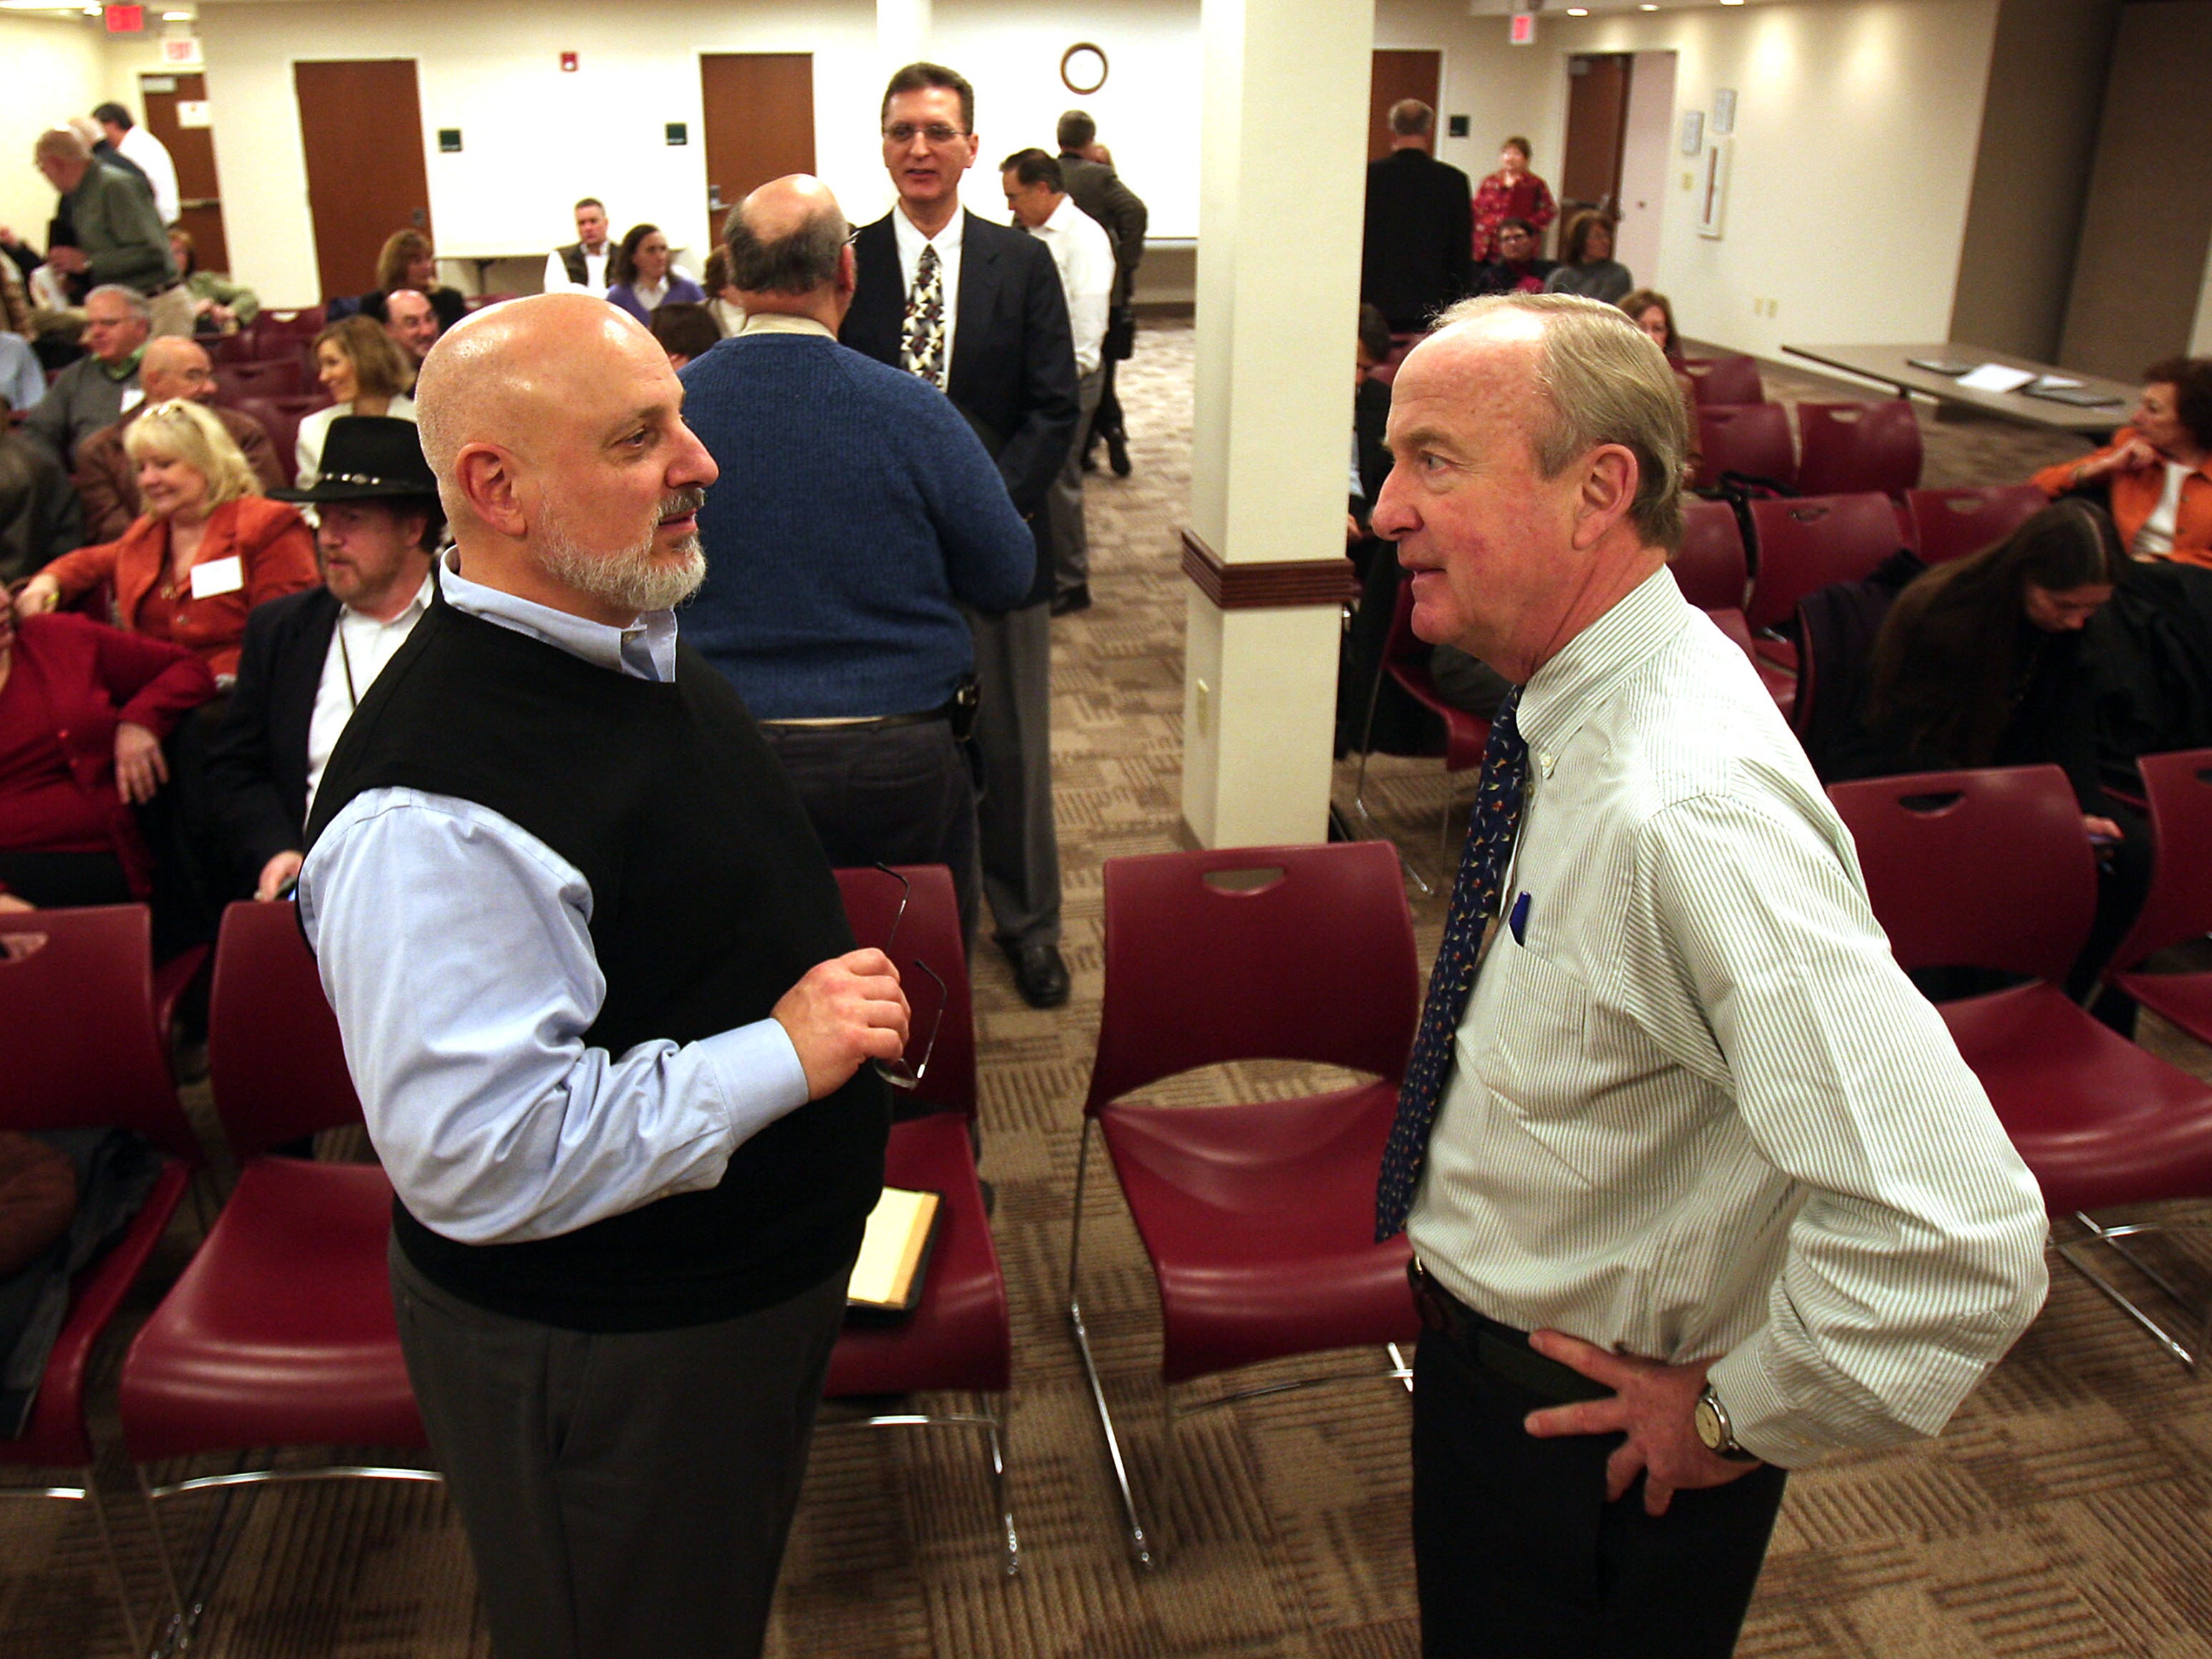 Parsipany, N.J.- January 30, 2013--- Glenn Nahass of GNPC llc in Pompton Plains , l, talks with Rep. Rodney Frelinghuysen who met with members of the Professional Support Group of Morris County at the Parsippany Main Public Library to share ideas about how Congress can spur job creation and restore confidence in America's economy.  